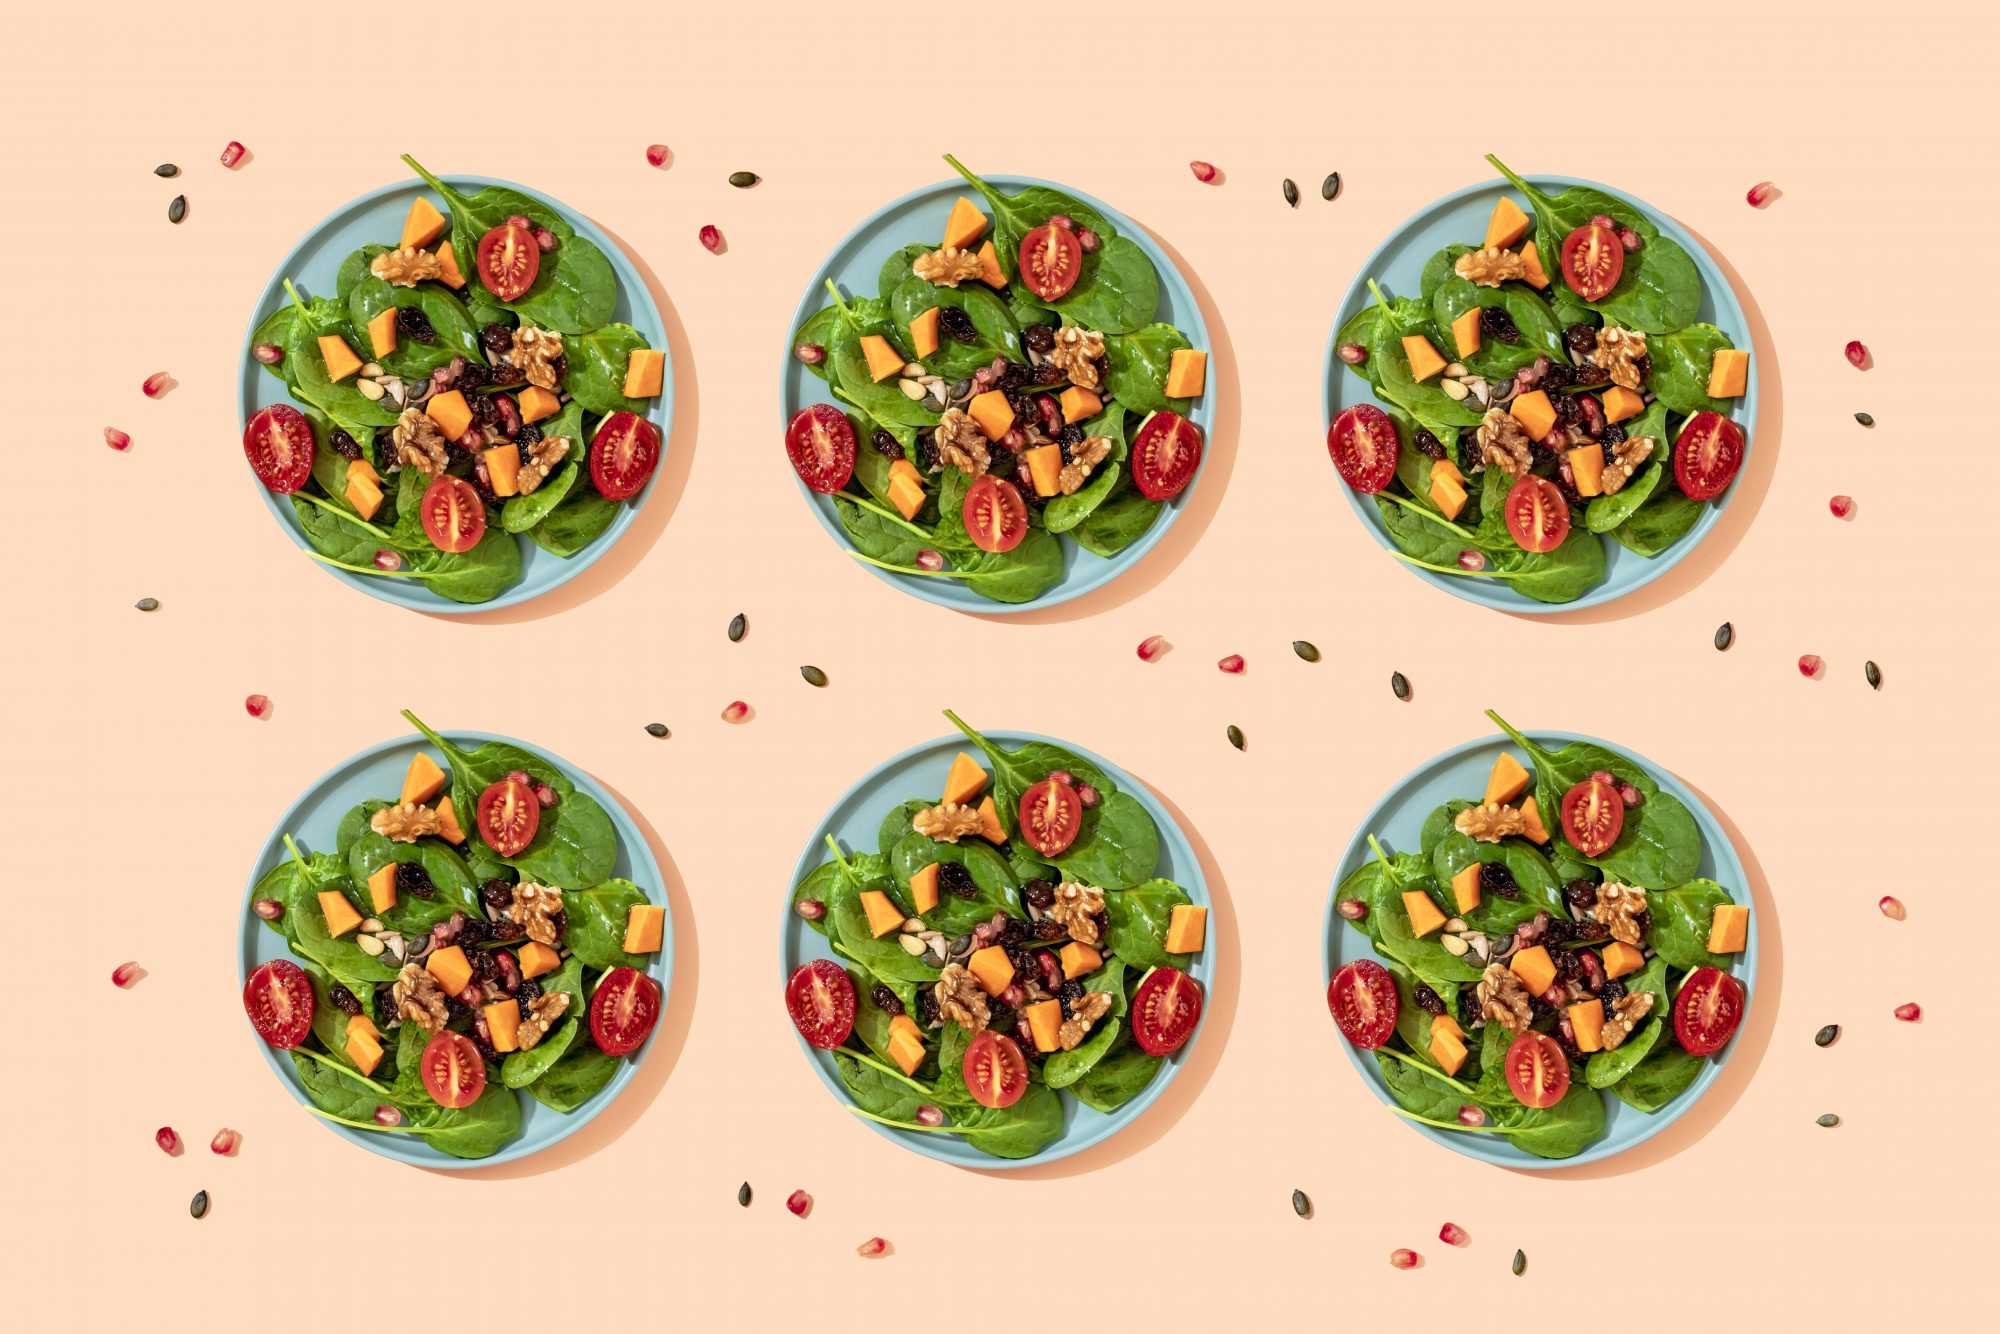 dietary-microtation: 6 plates of the same meal